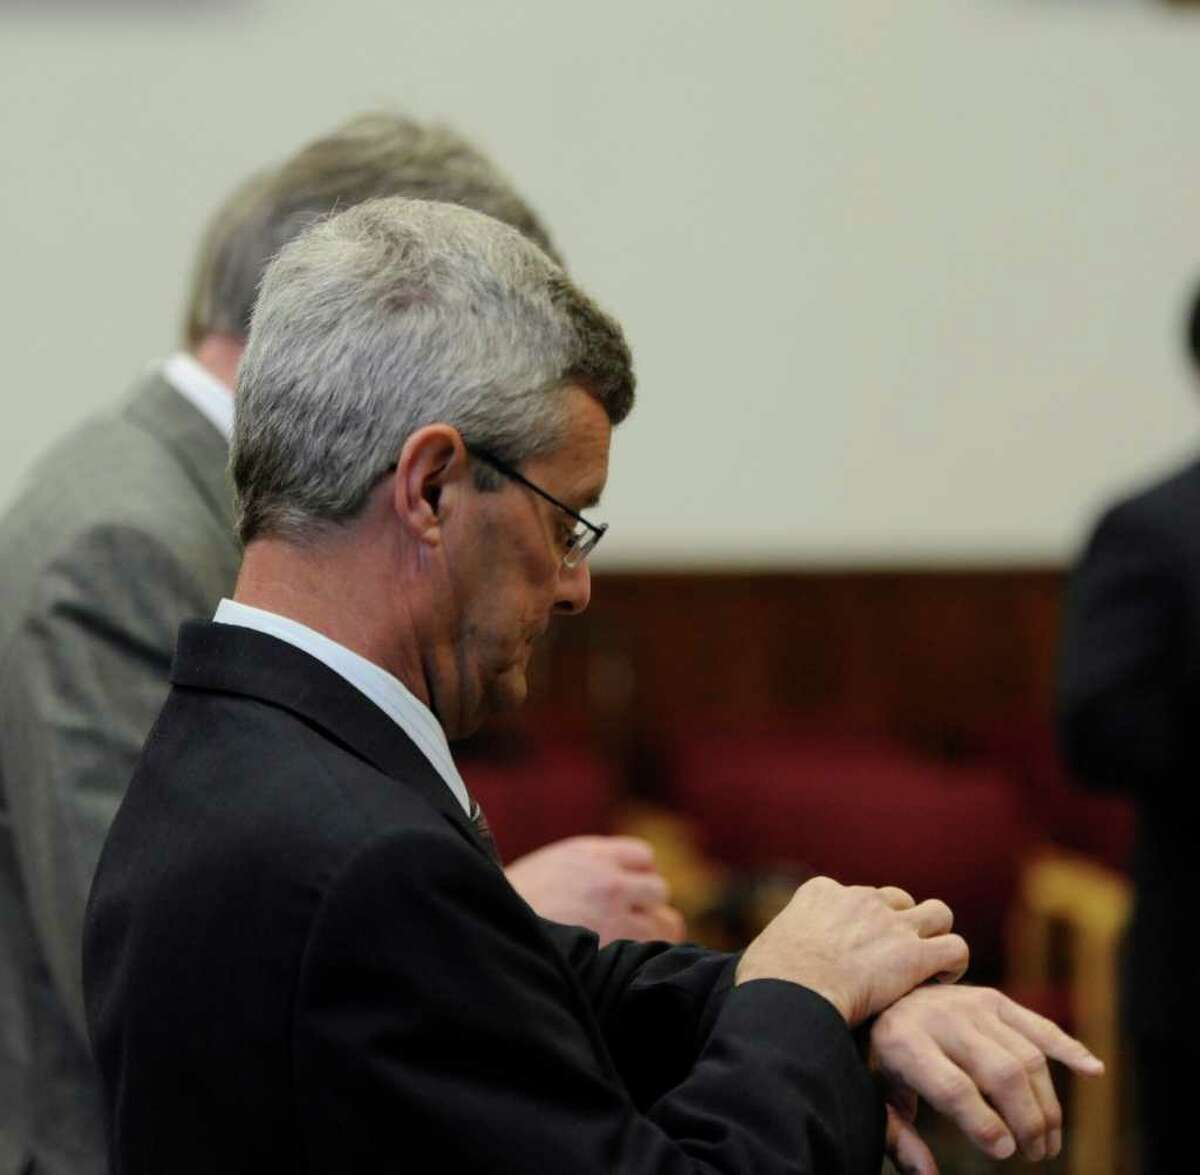 Ex-priest Gary Mercure checks his watch during a break in his trial. He was convicted of sexual abusing two boys in the 1980s. (Skip Dickstein / Times Union)